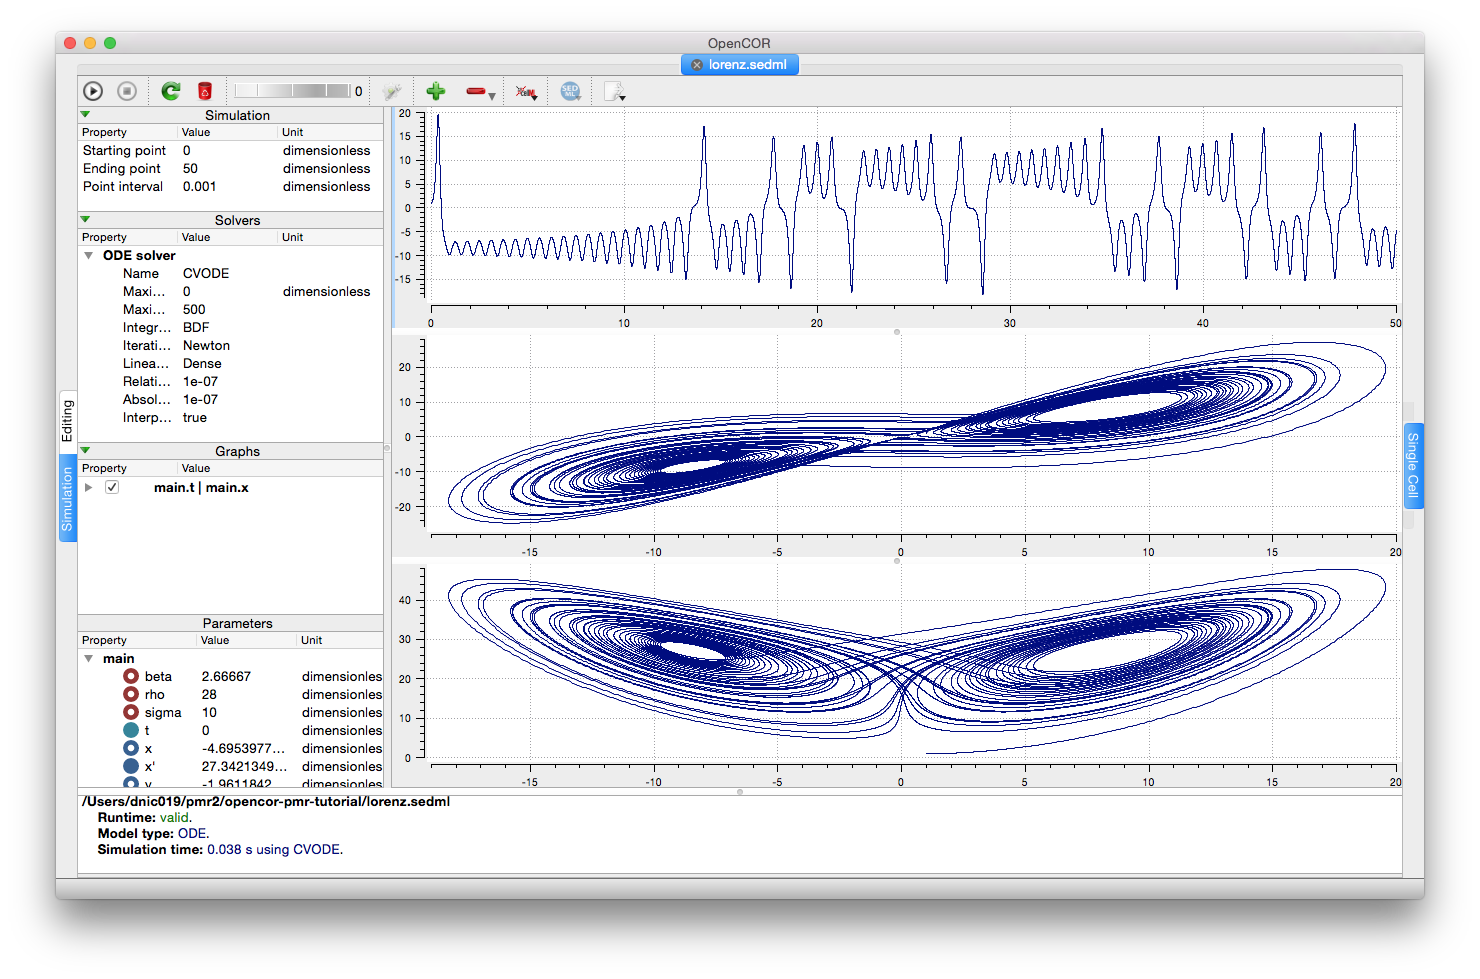 Screenshot illustrating the results of executing the Lorenz attractor simulation experiment in OpenCOR.